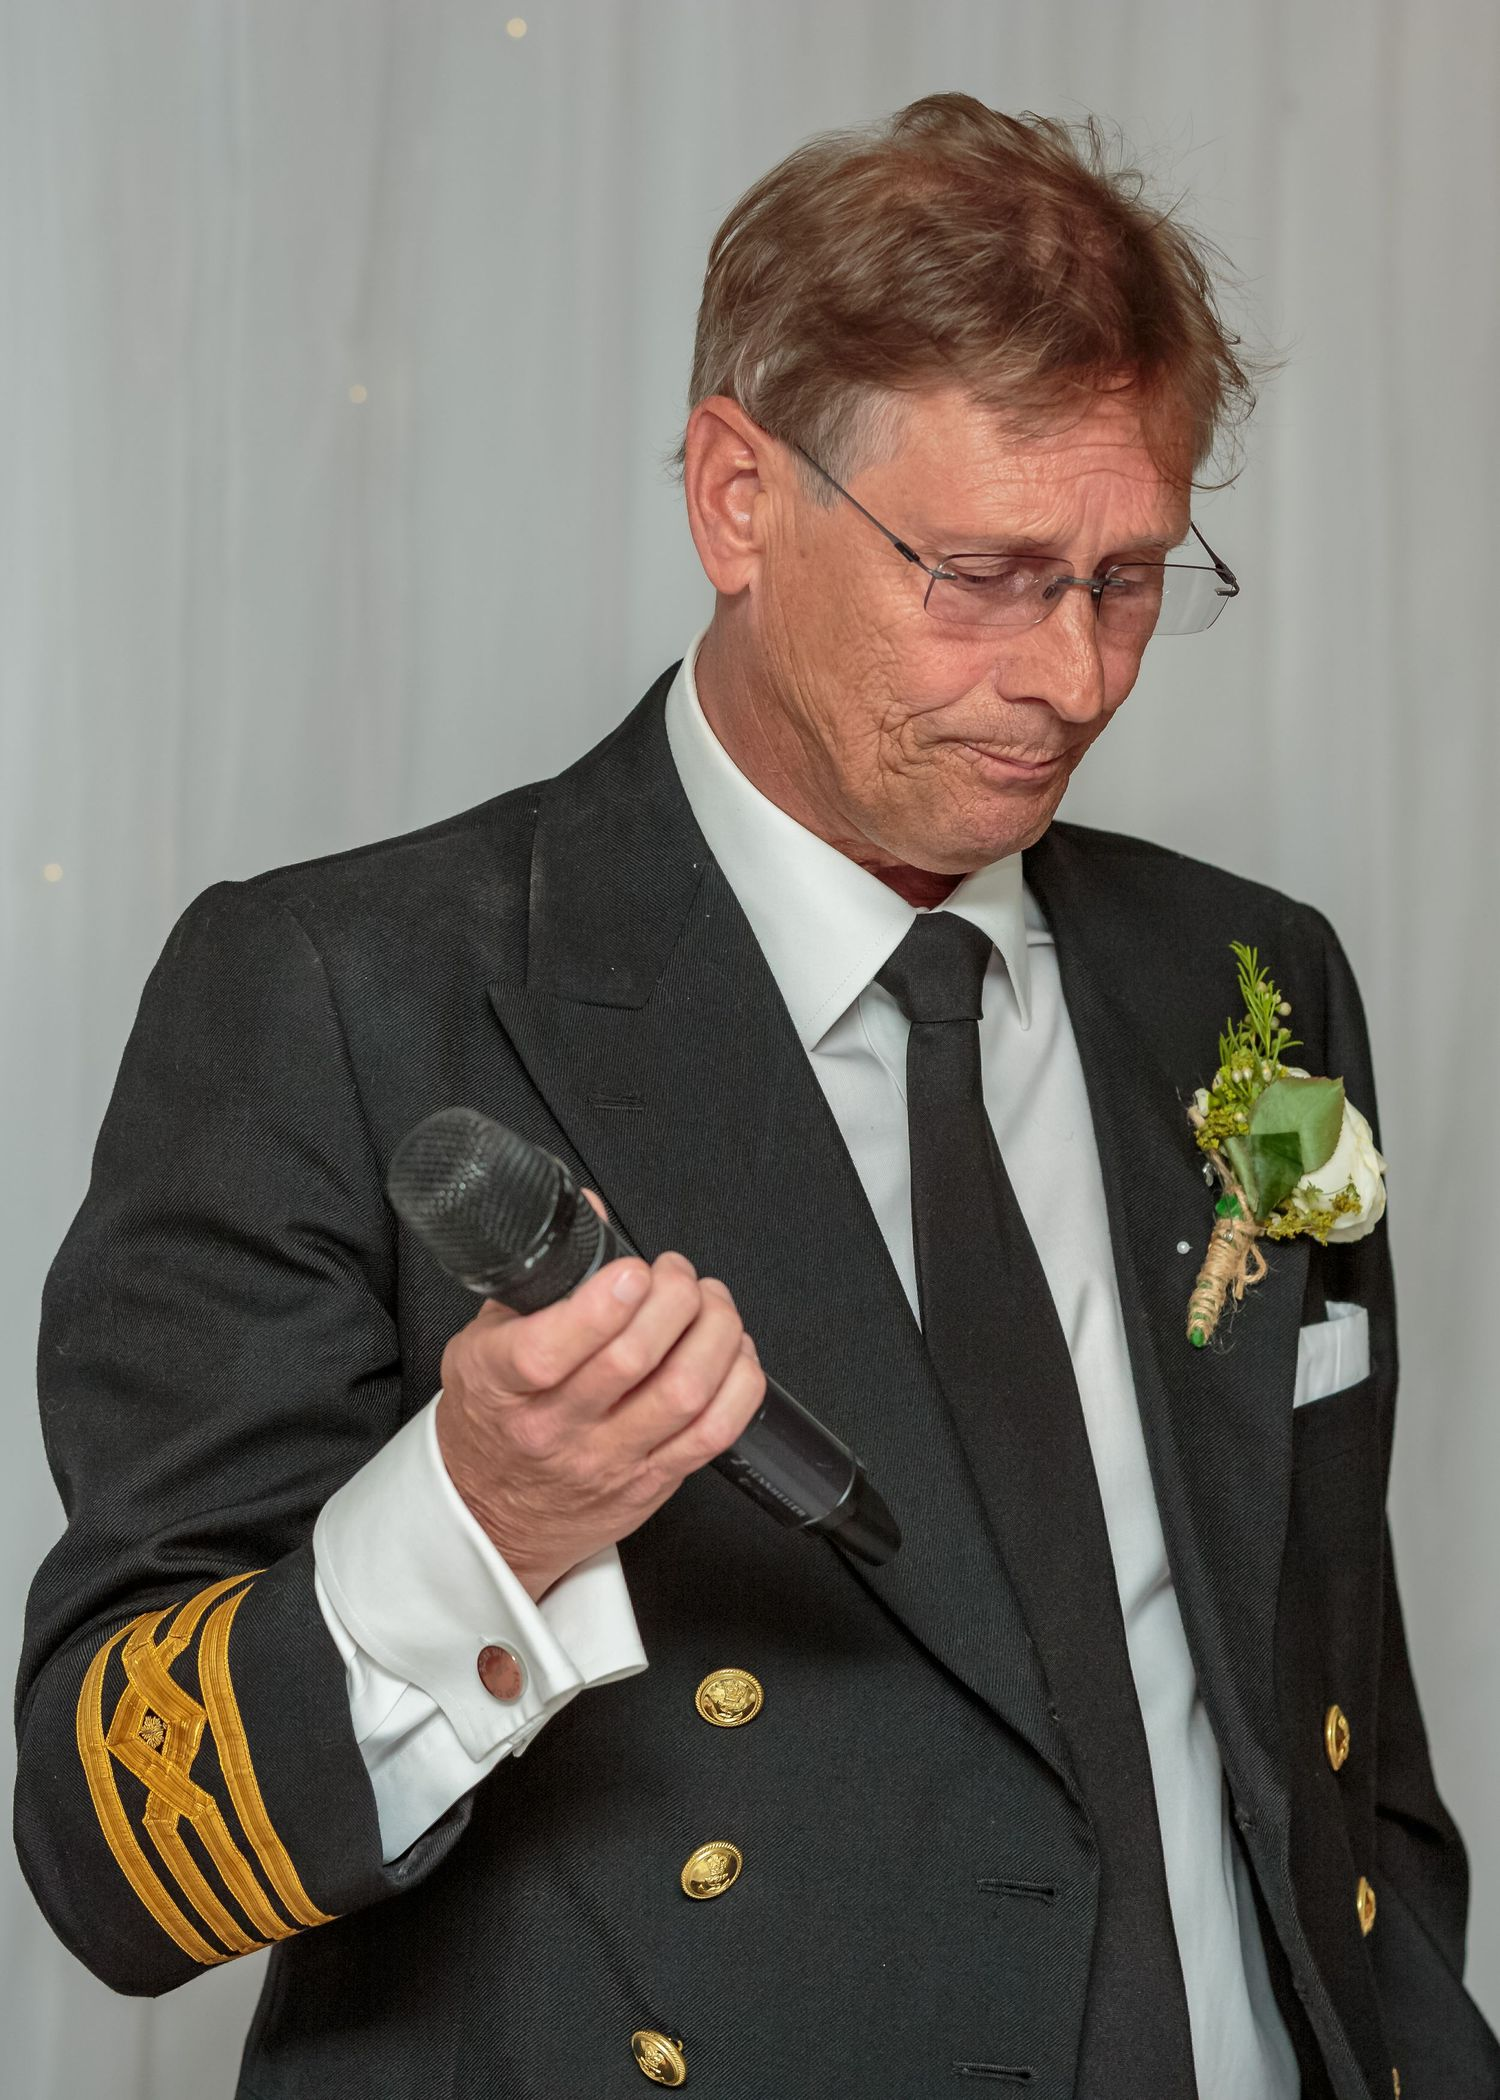 father of the bride wearing his pilot outfit holds the microphone looking upset during his speech